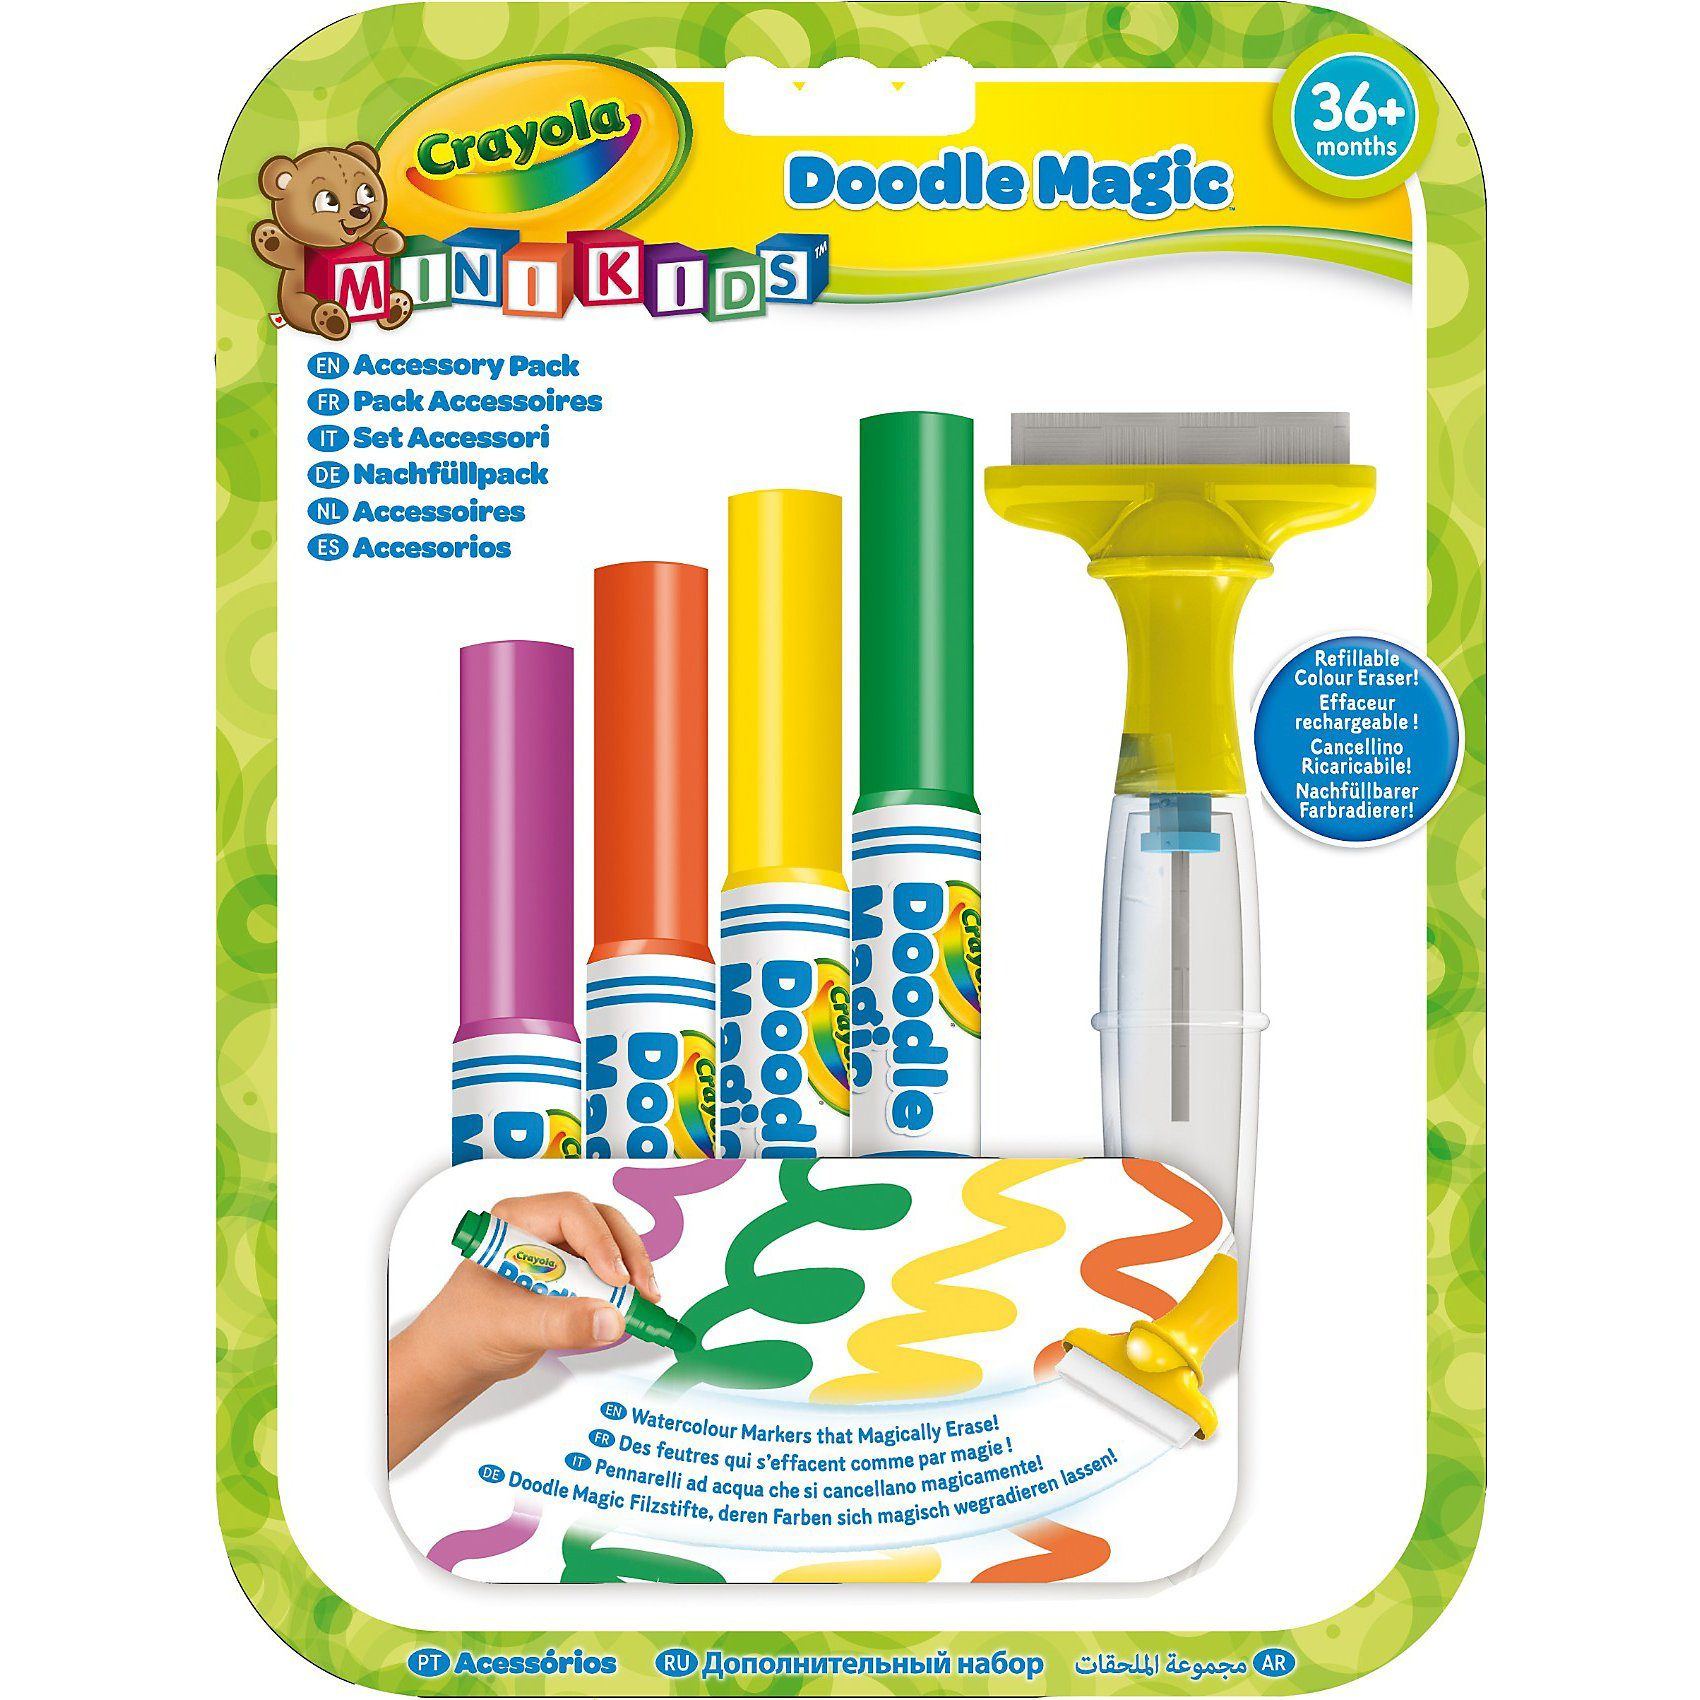 Crayola® Doodle Magic Nachfüllpack